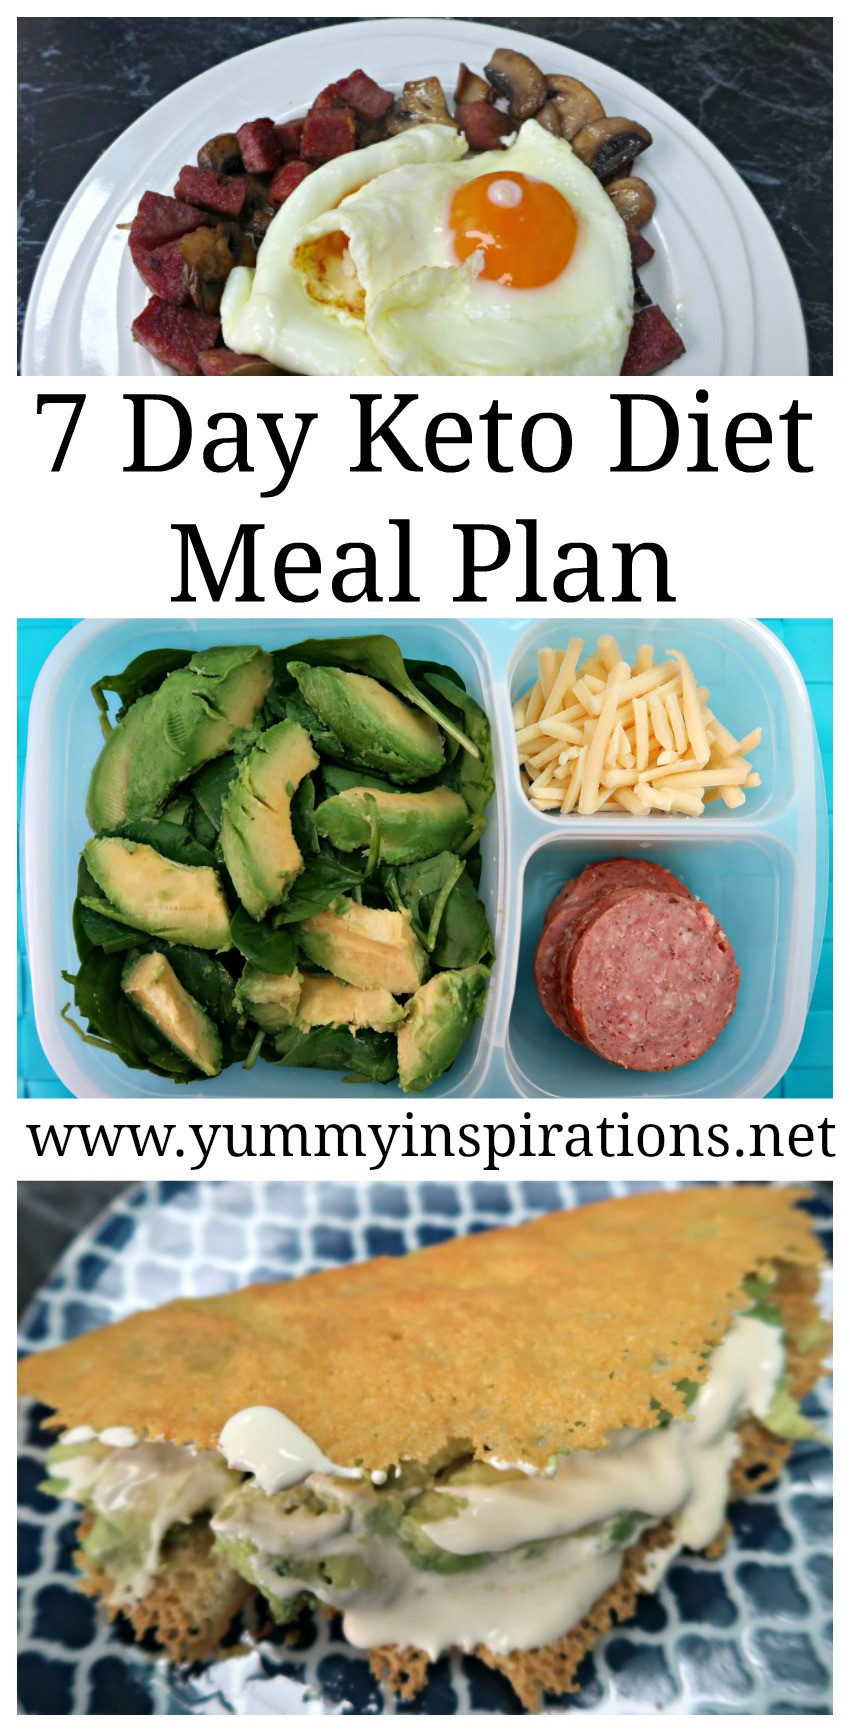 Keto Diet Snacks Ideas  7 Day Keto Diet Meal Plan For Weight Loss Ketogenic Foods